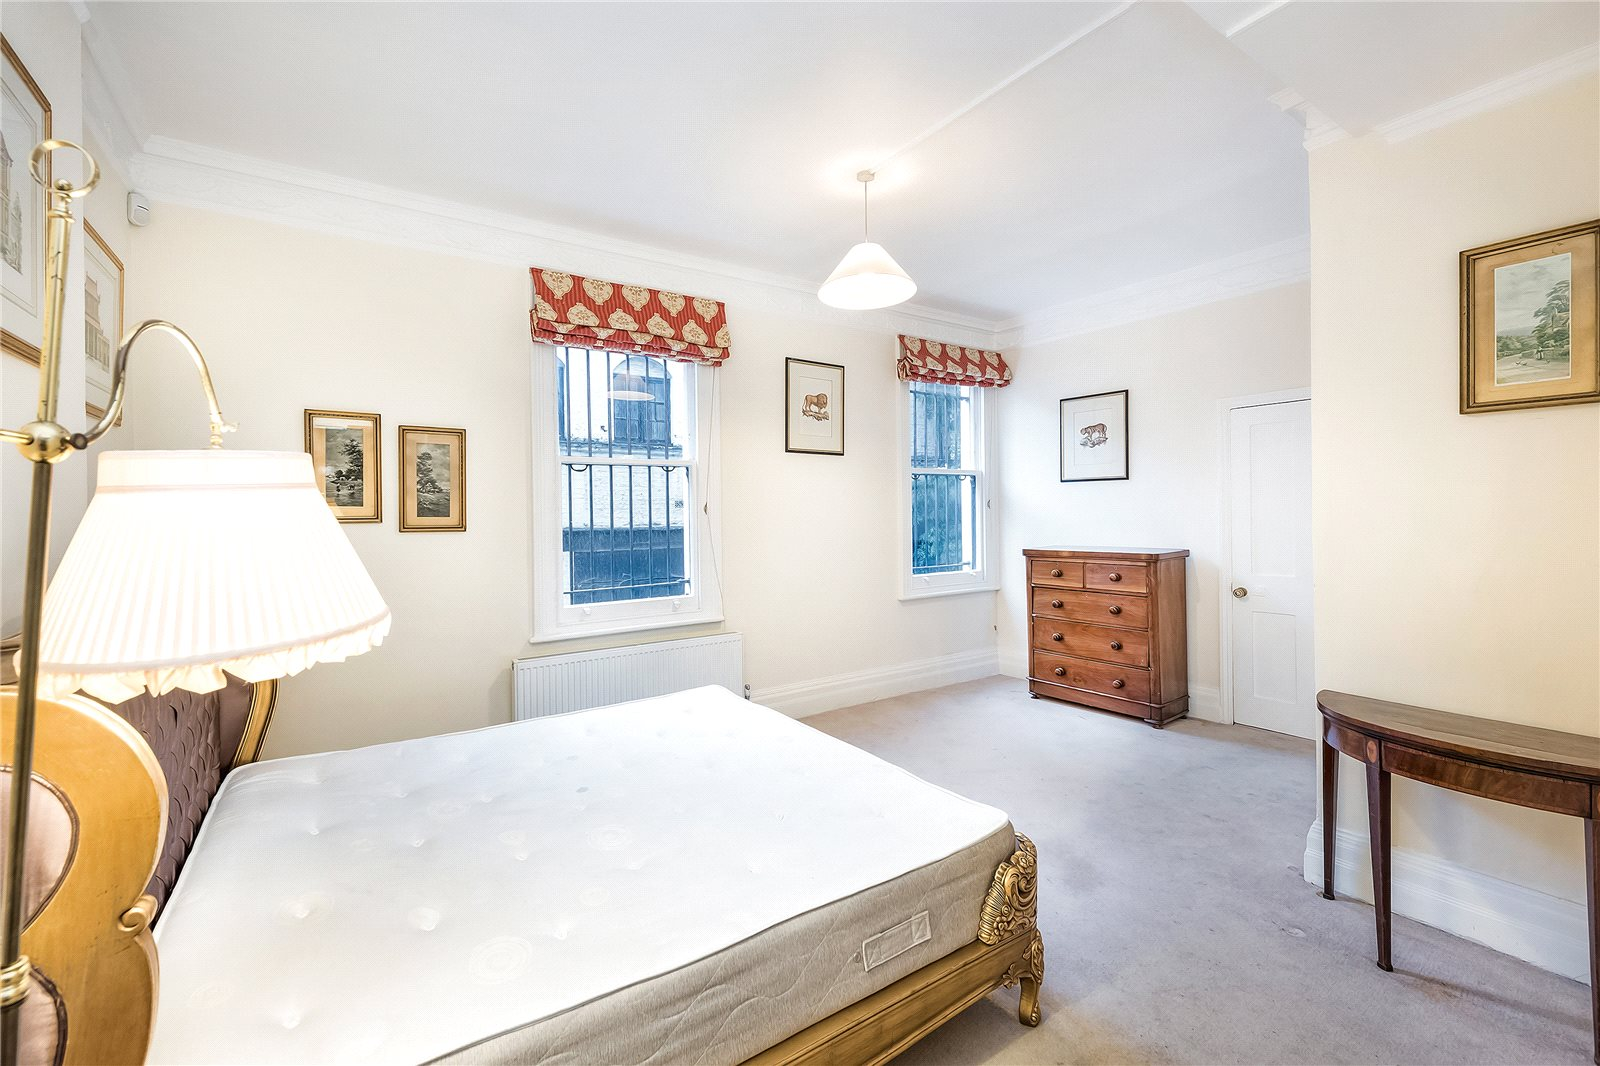 Additional photo for property listing at Harrington Gardens, South Kensington, London, SW7 South Kensington, London, Engeland